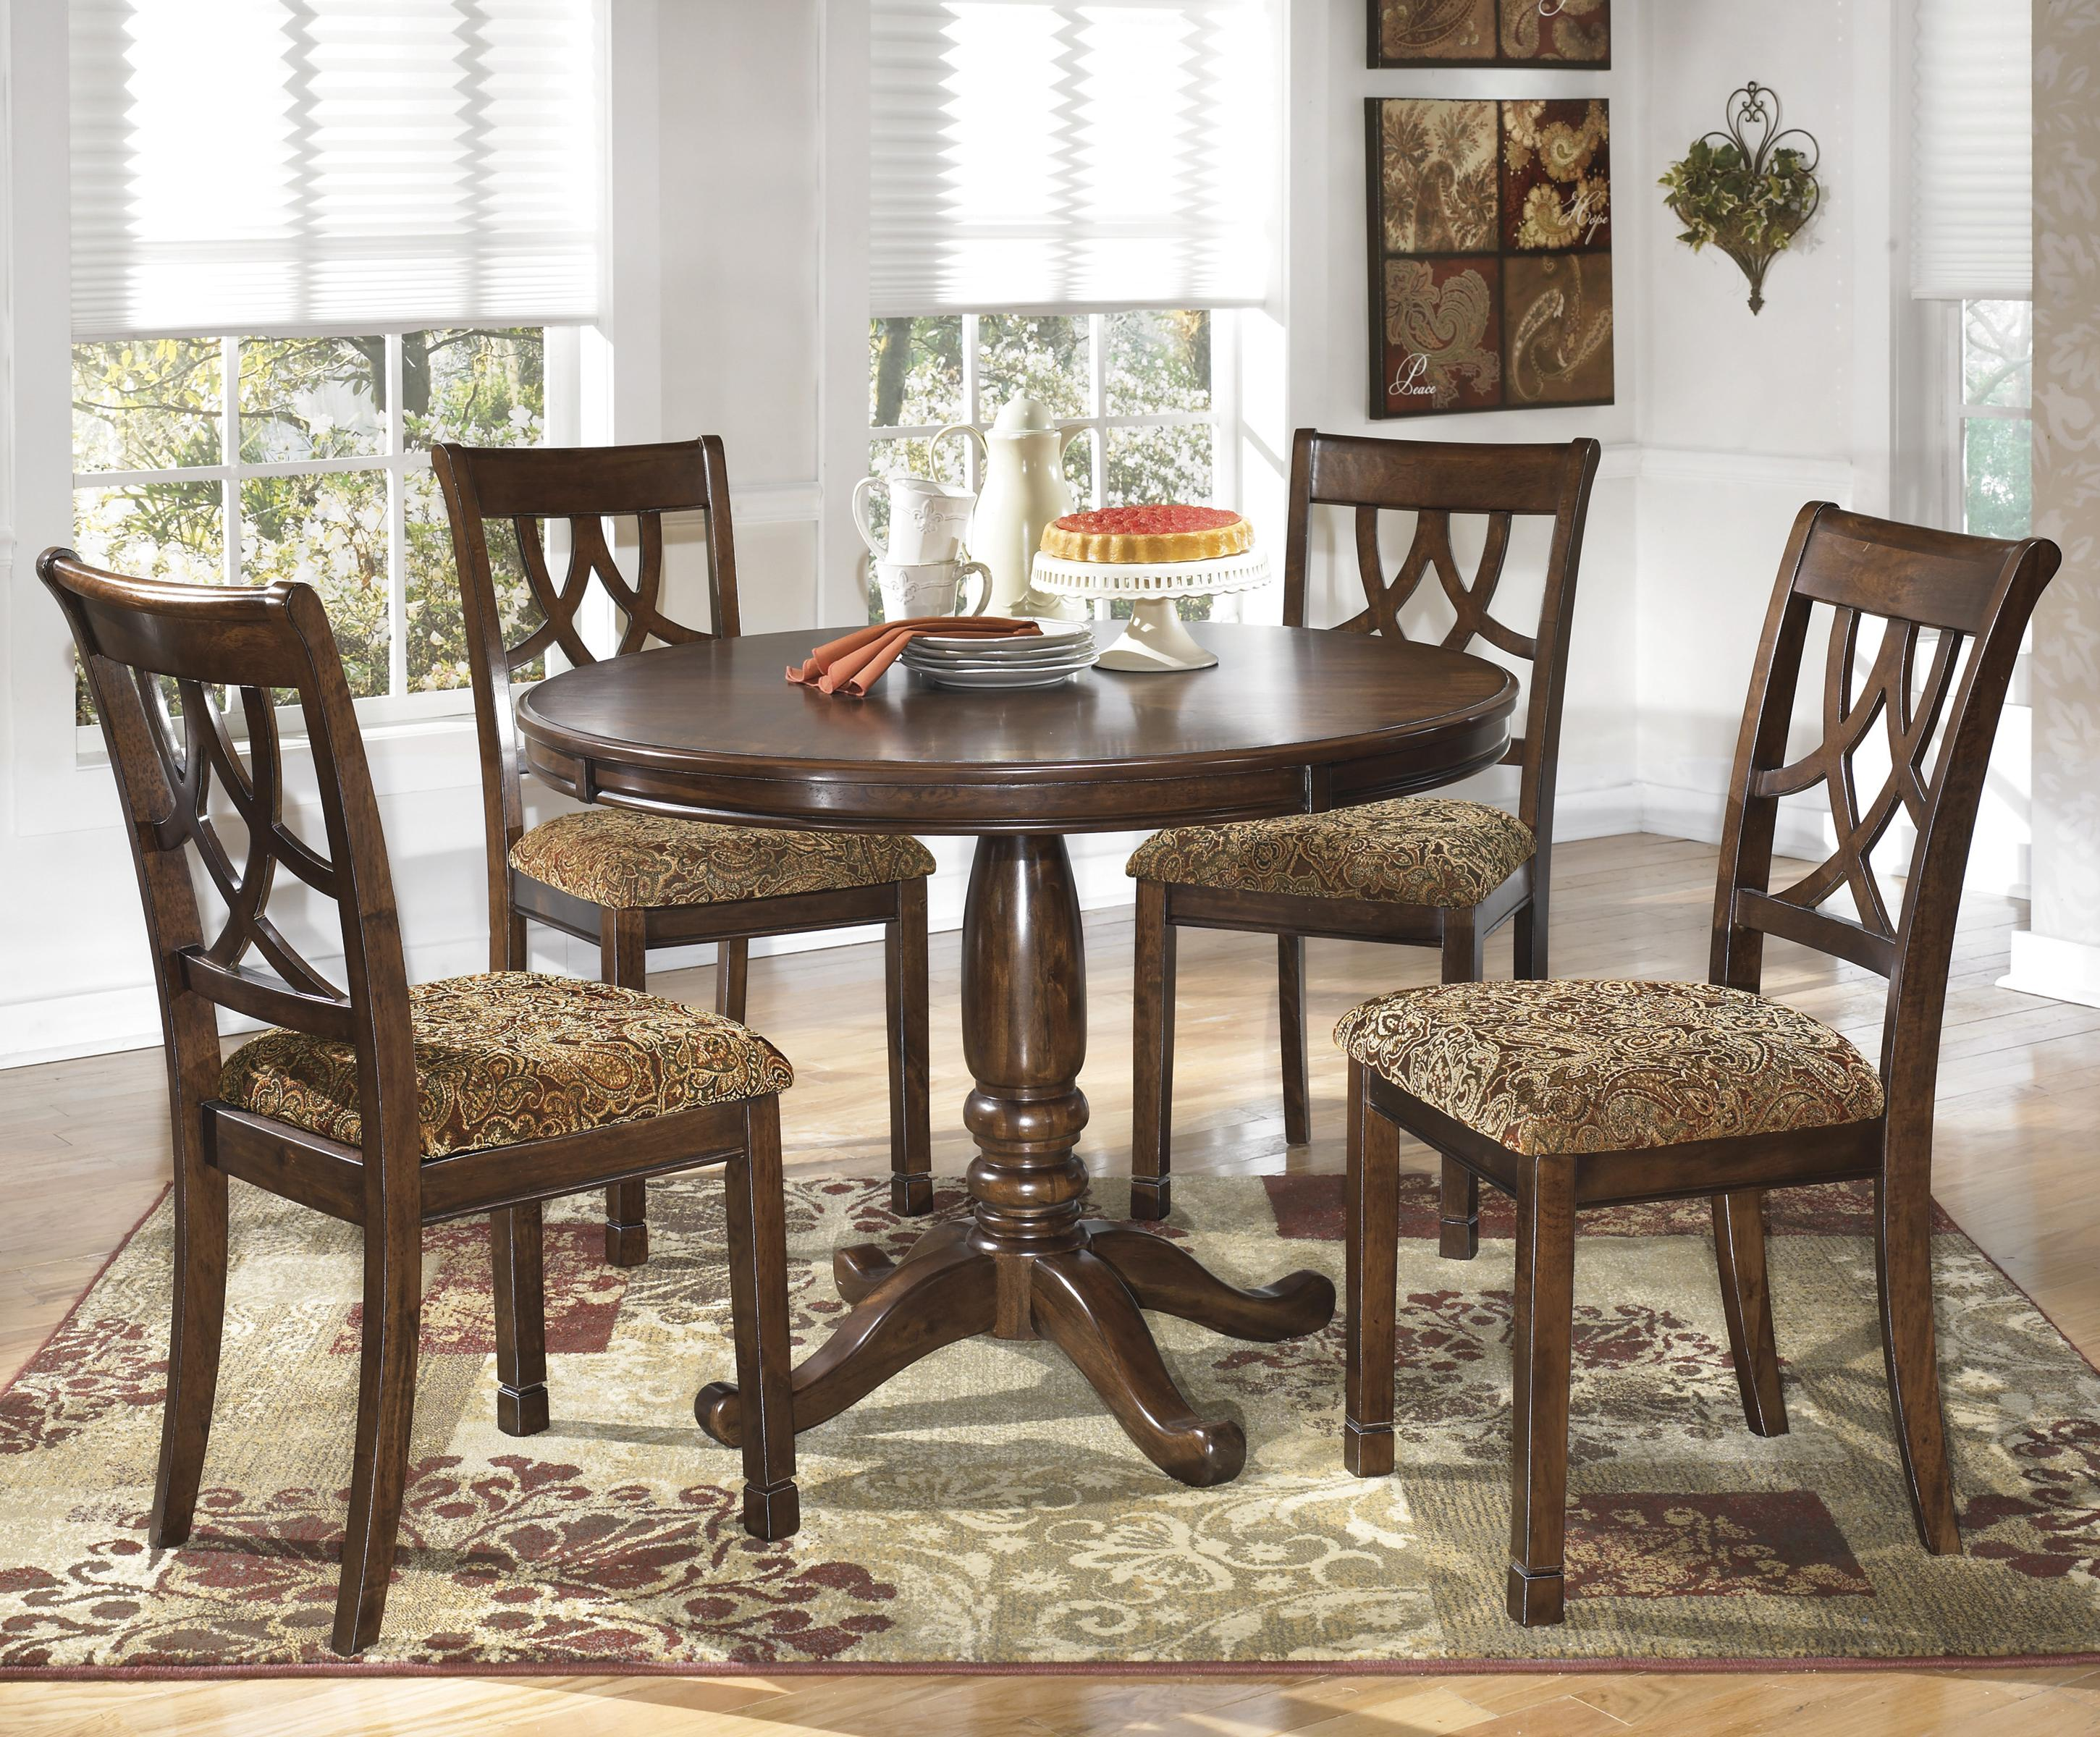 5 Piece Cherry Finish Round Dining Table Set By Signature Design By Ashley Wolf And Gardiner